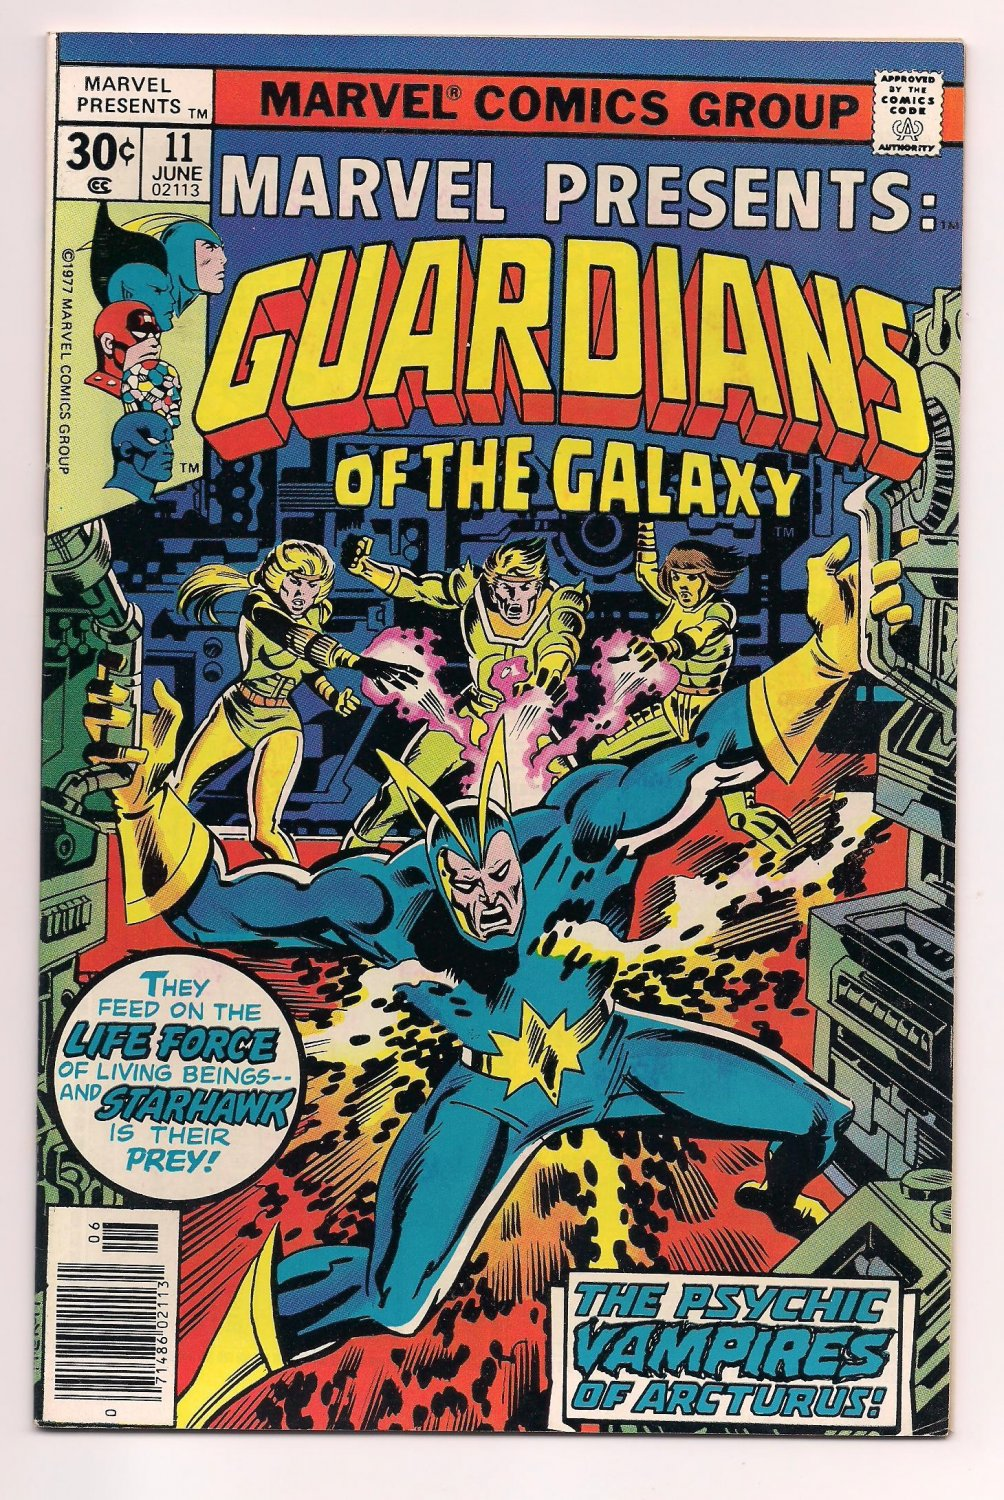 Marvel Presents #11 (1975) Guardians of the Galaxy vf / or better Newsstand sh2